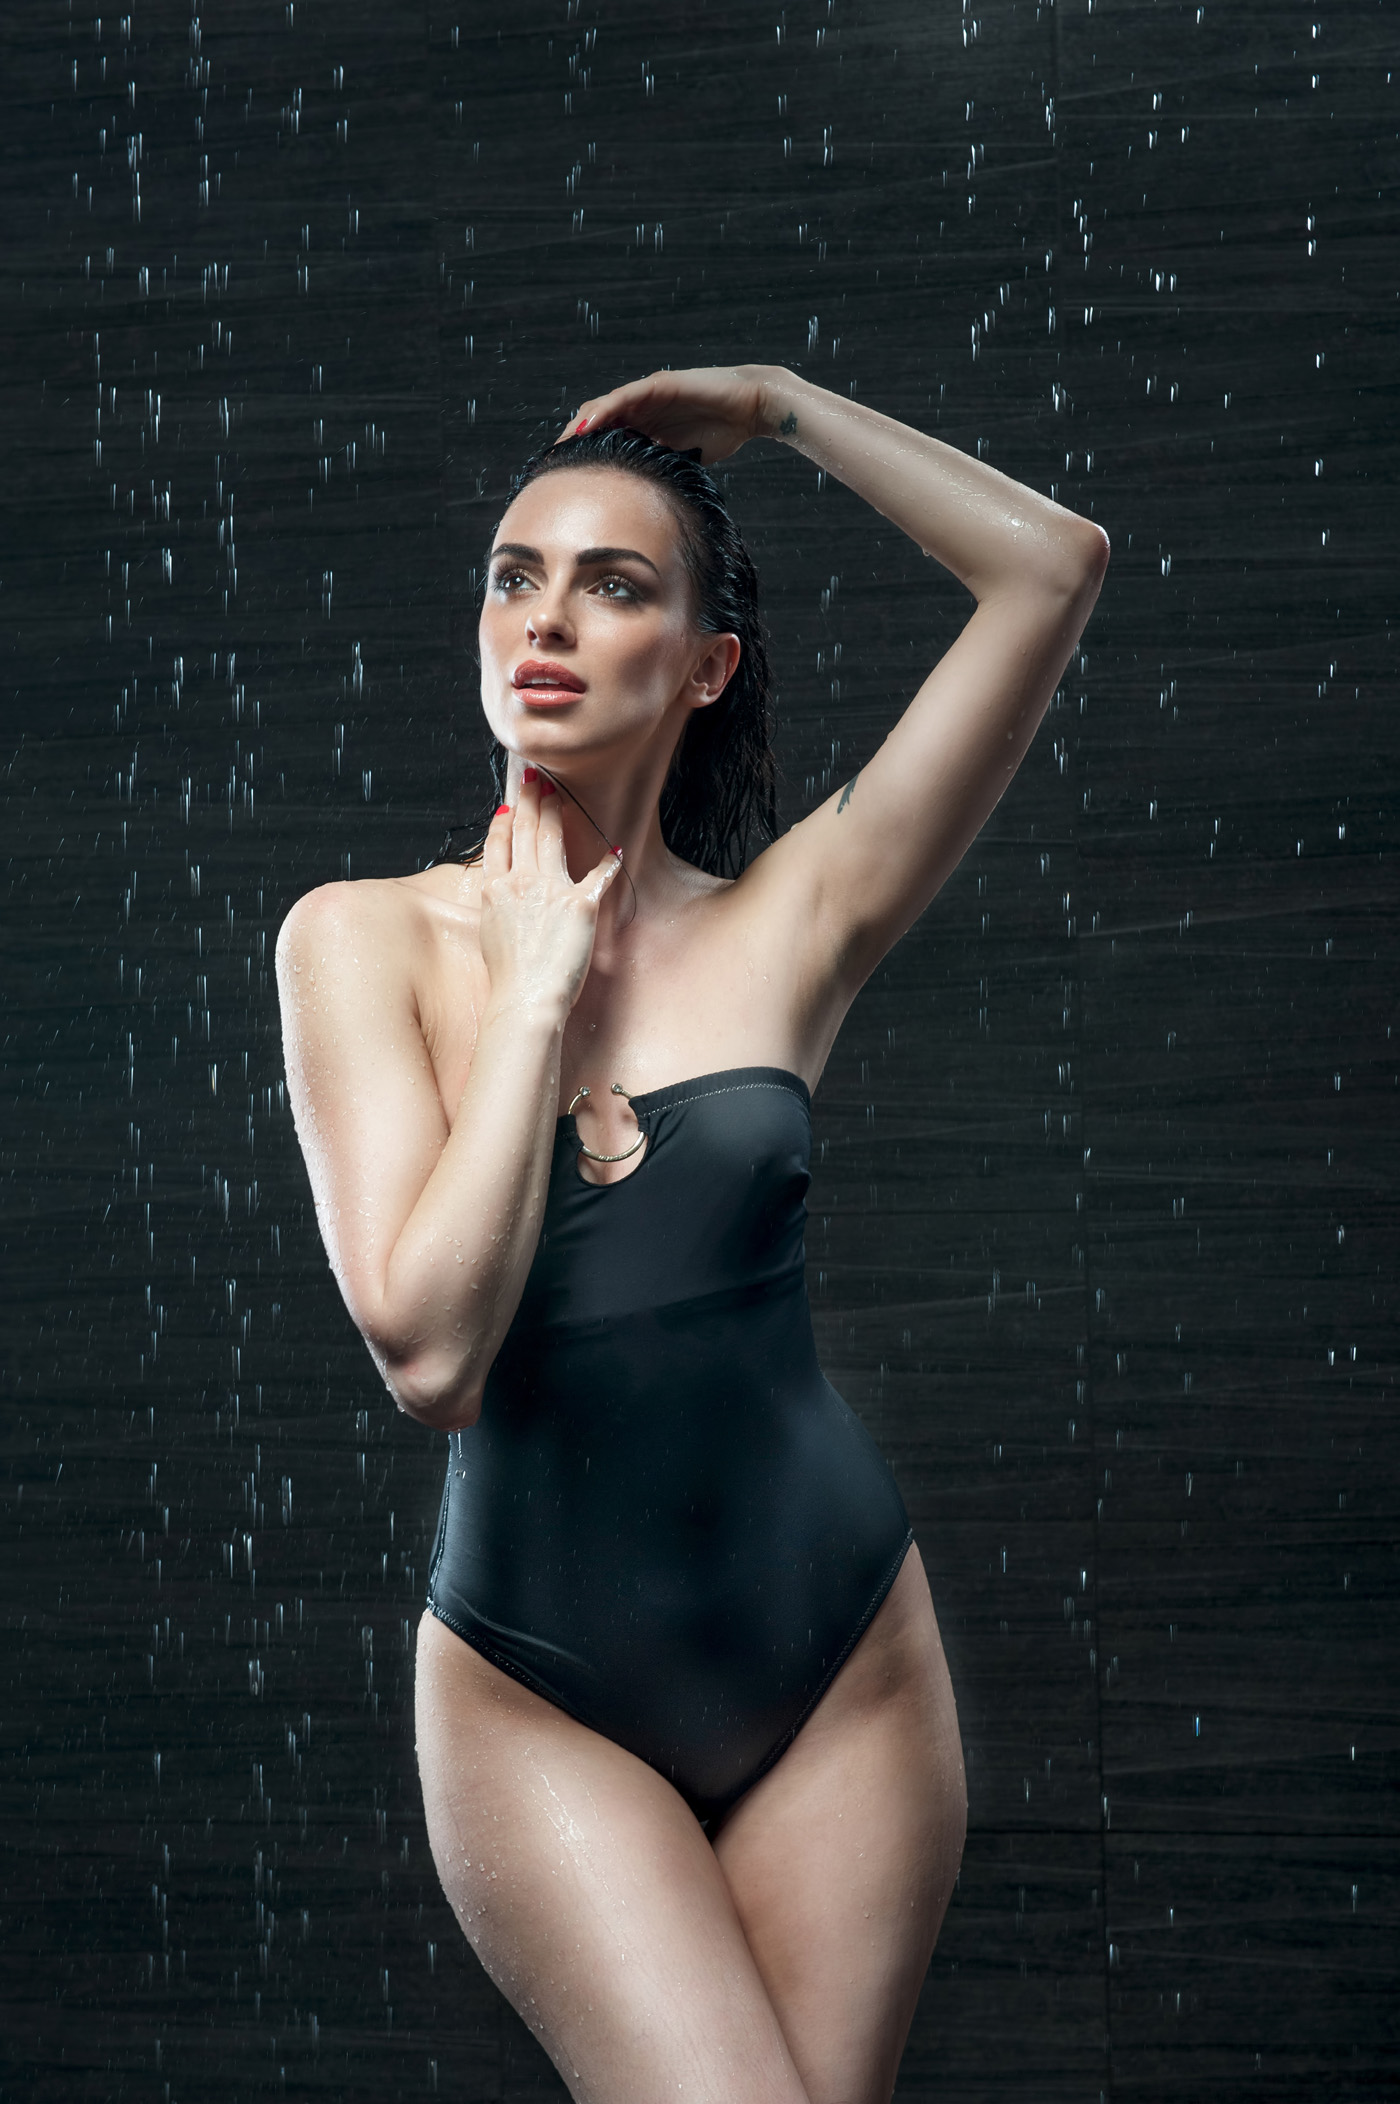 Black swimsuit beauty in the rain 50985